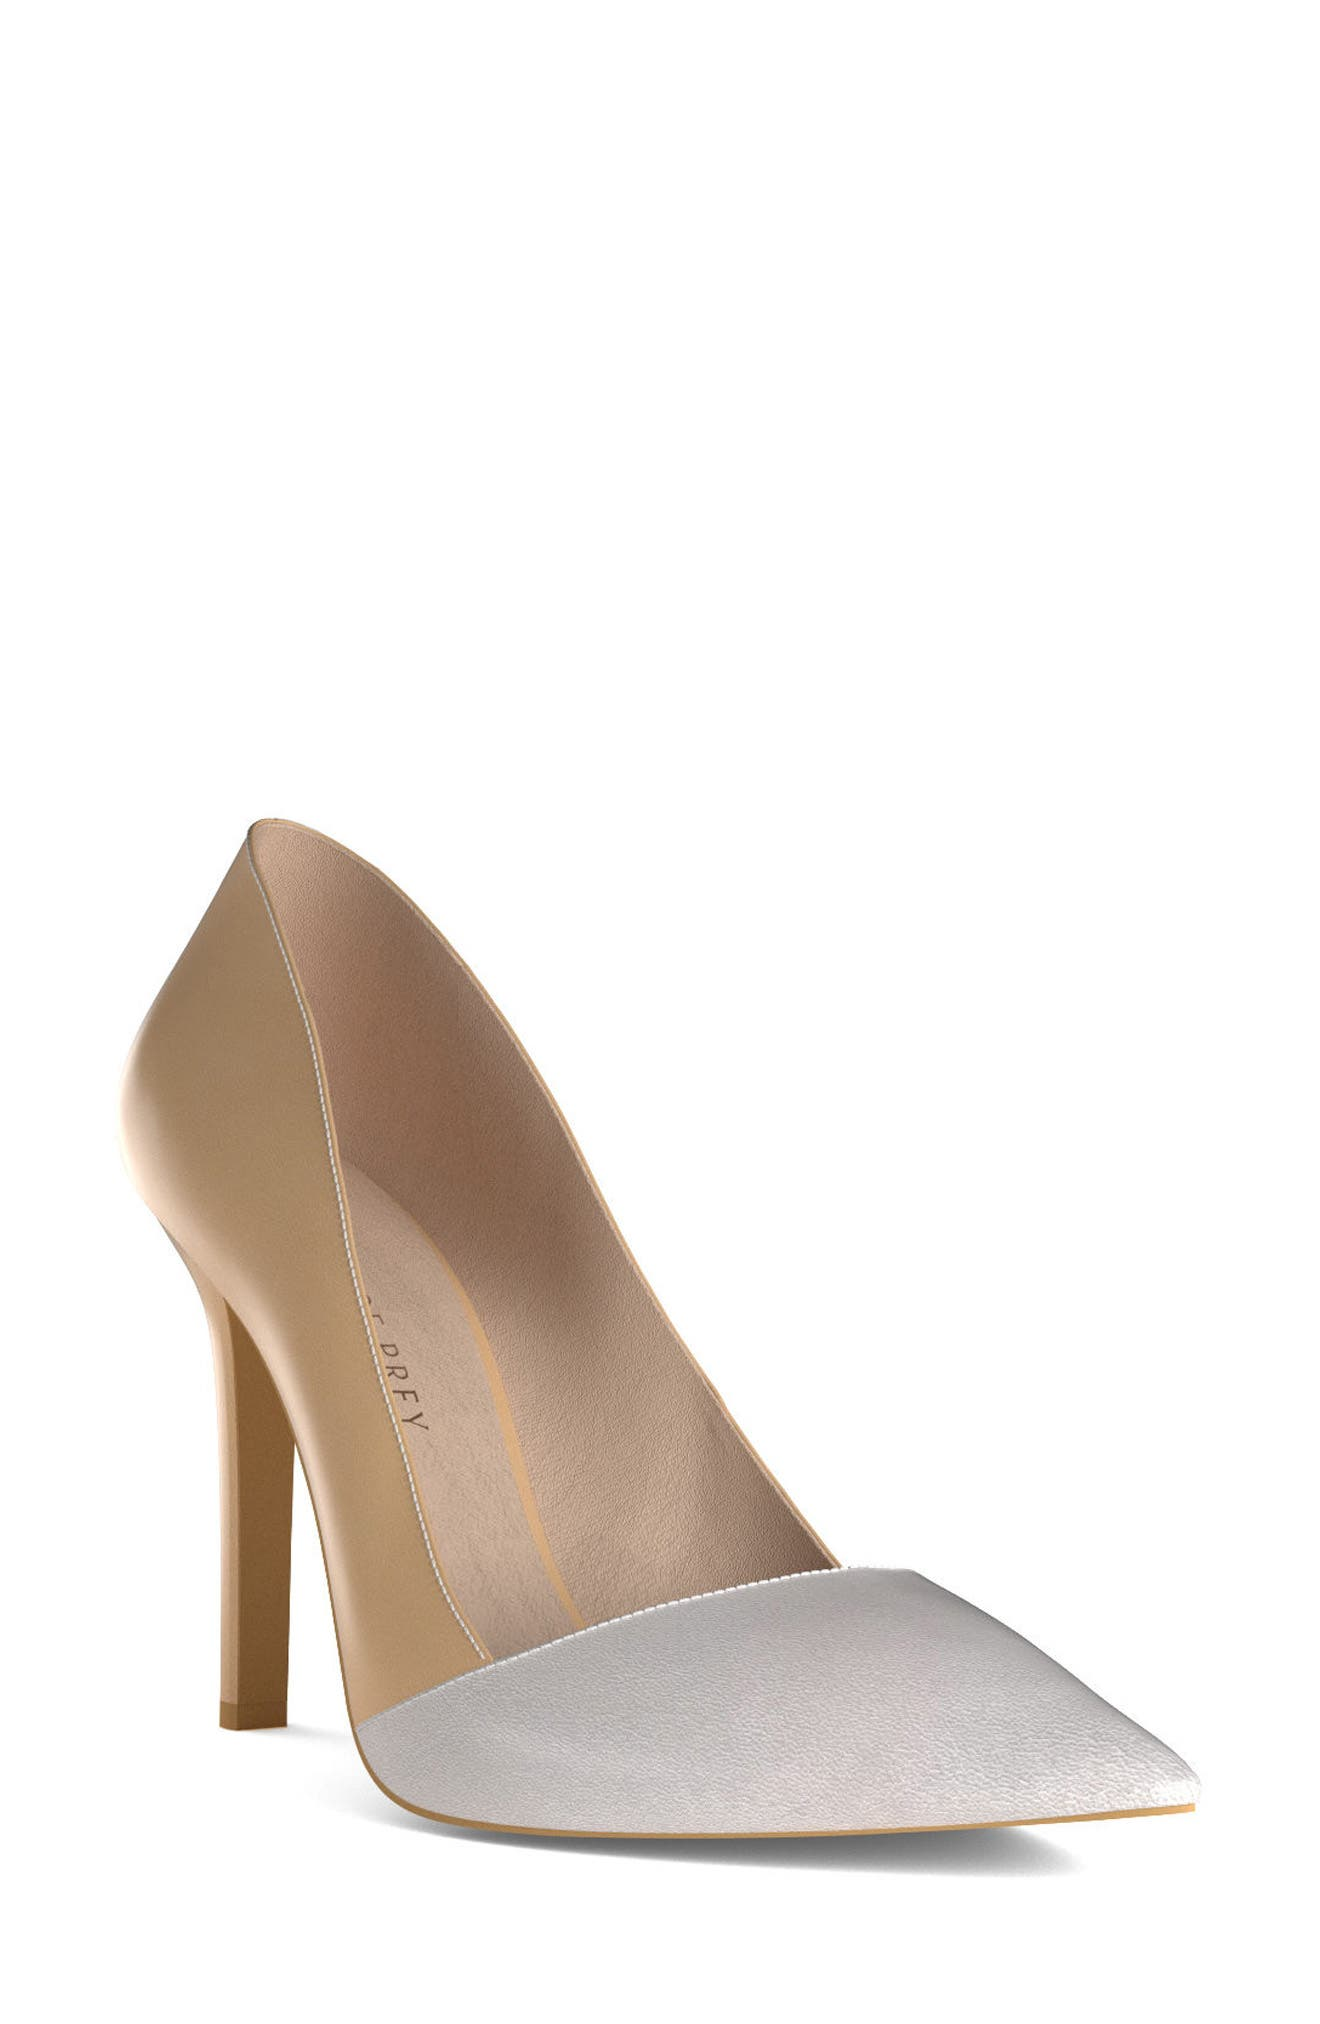 Shoes of Prey Pointy Toe Pump (Women)